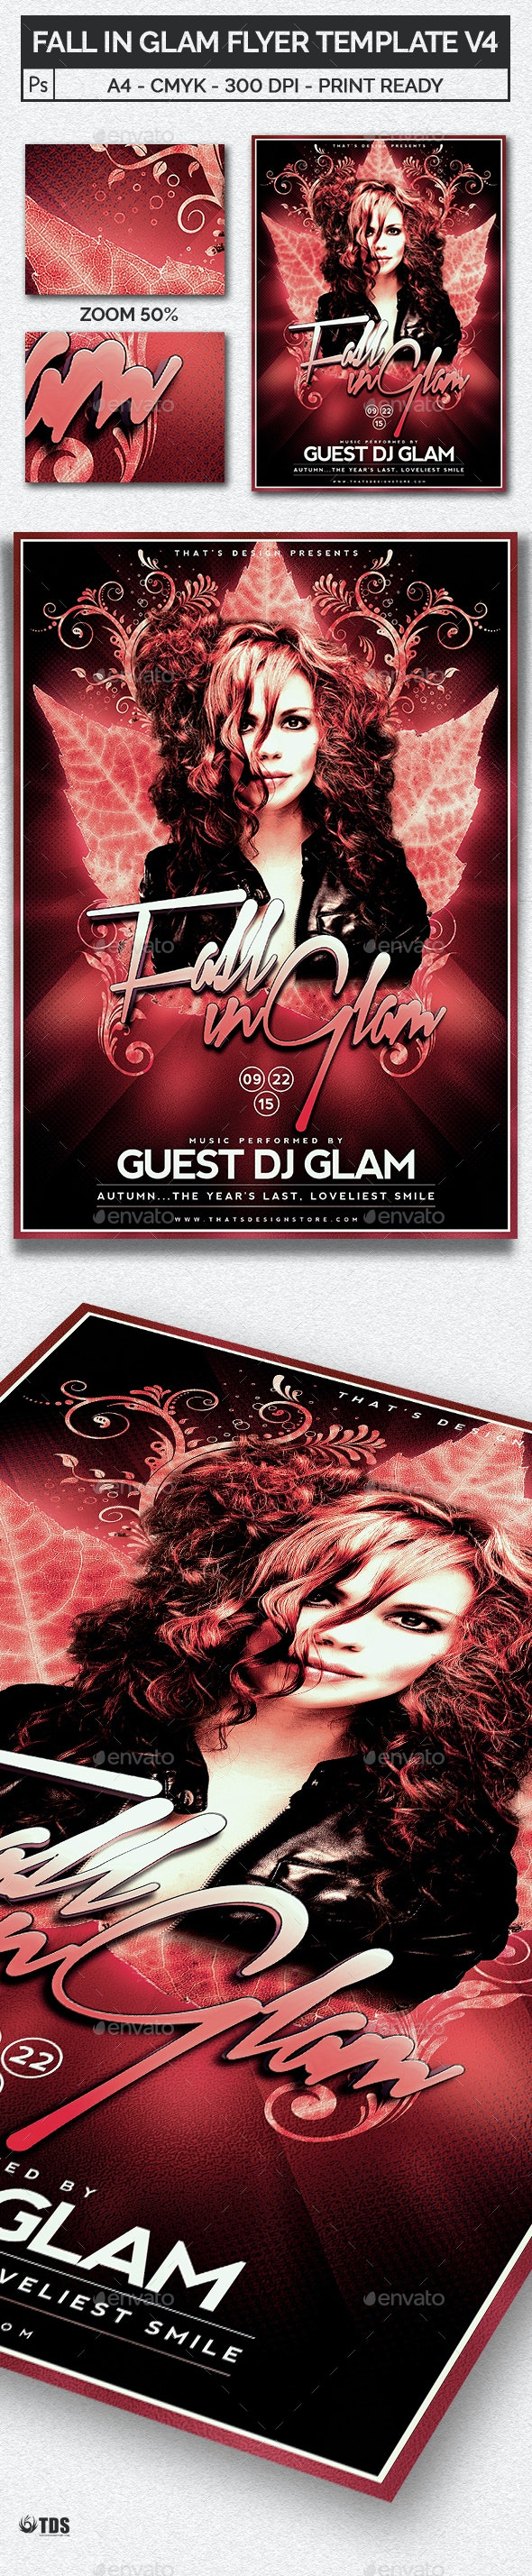 Fall in Glam Flyer Template V4 - Clubs & Parties Events